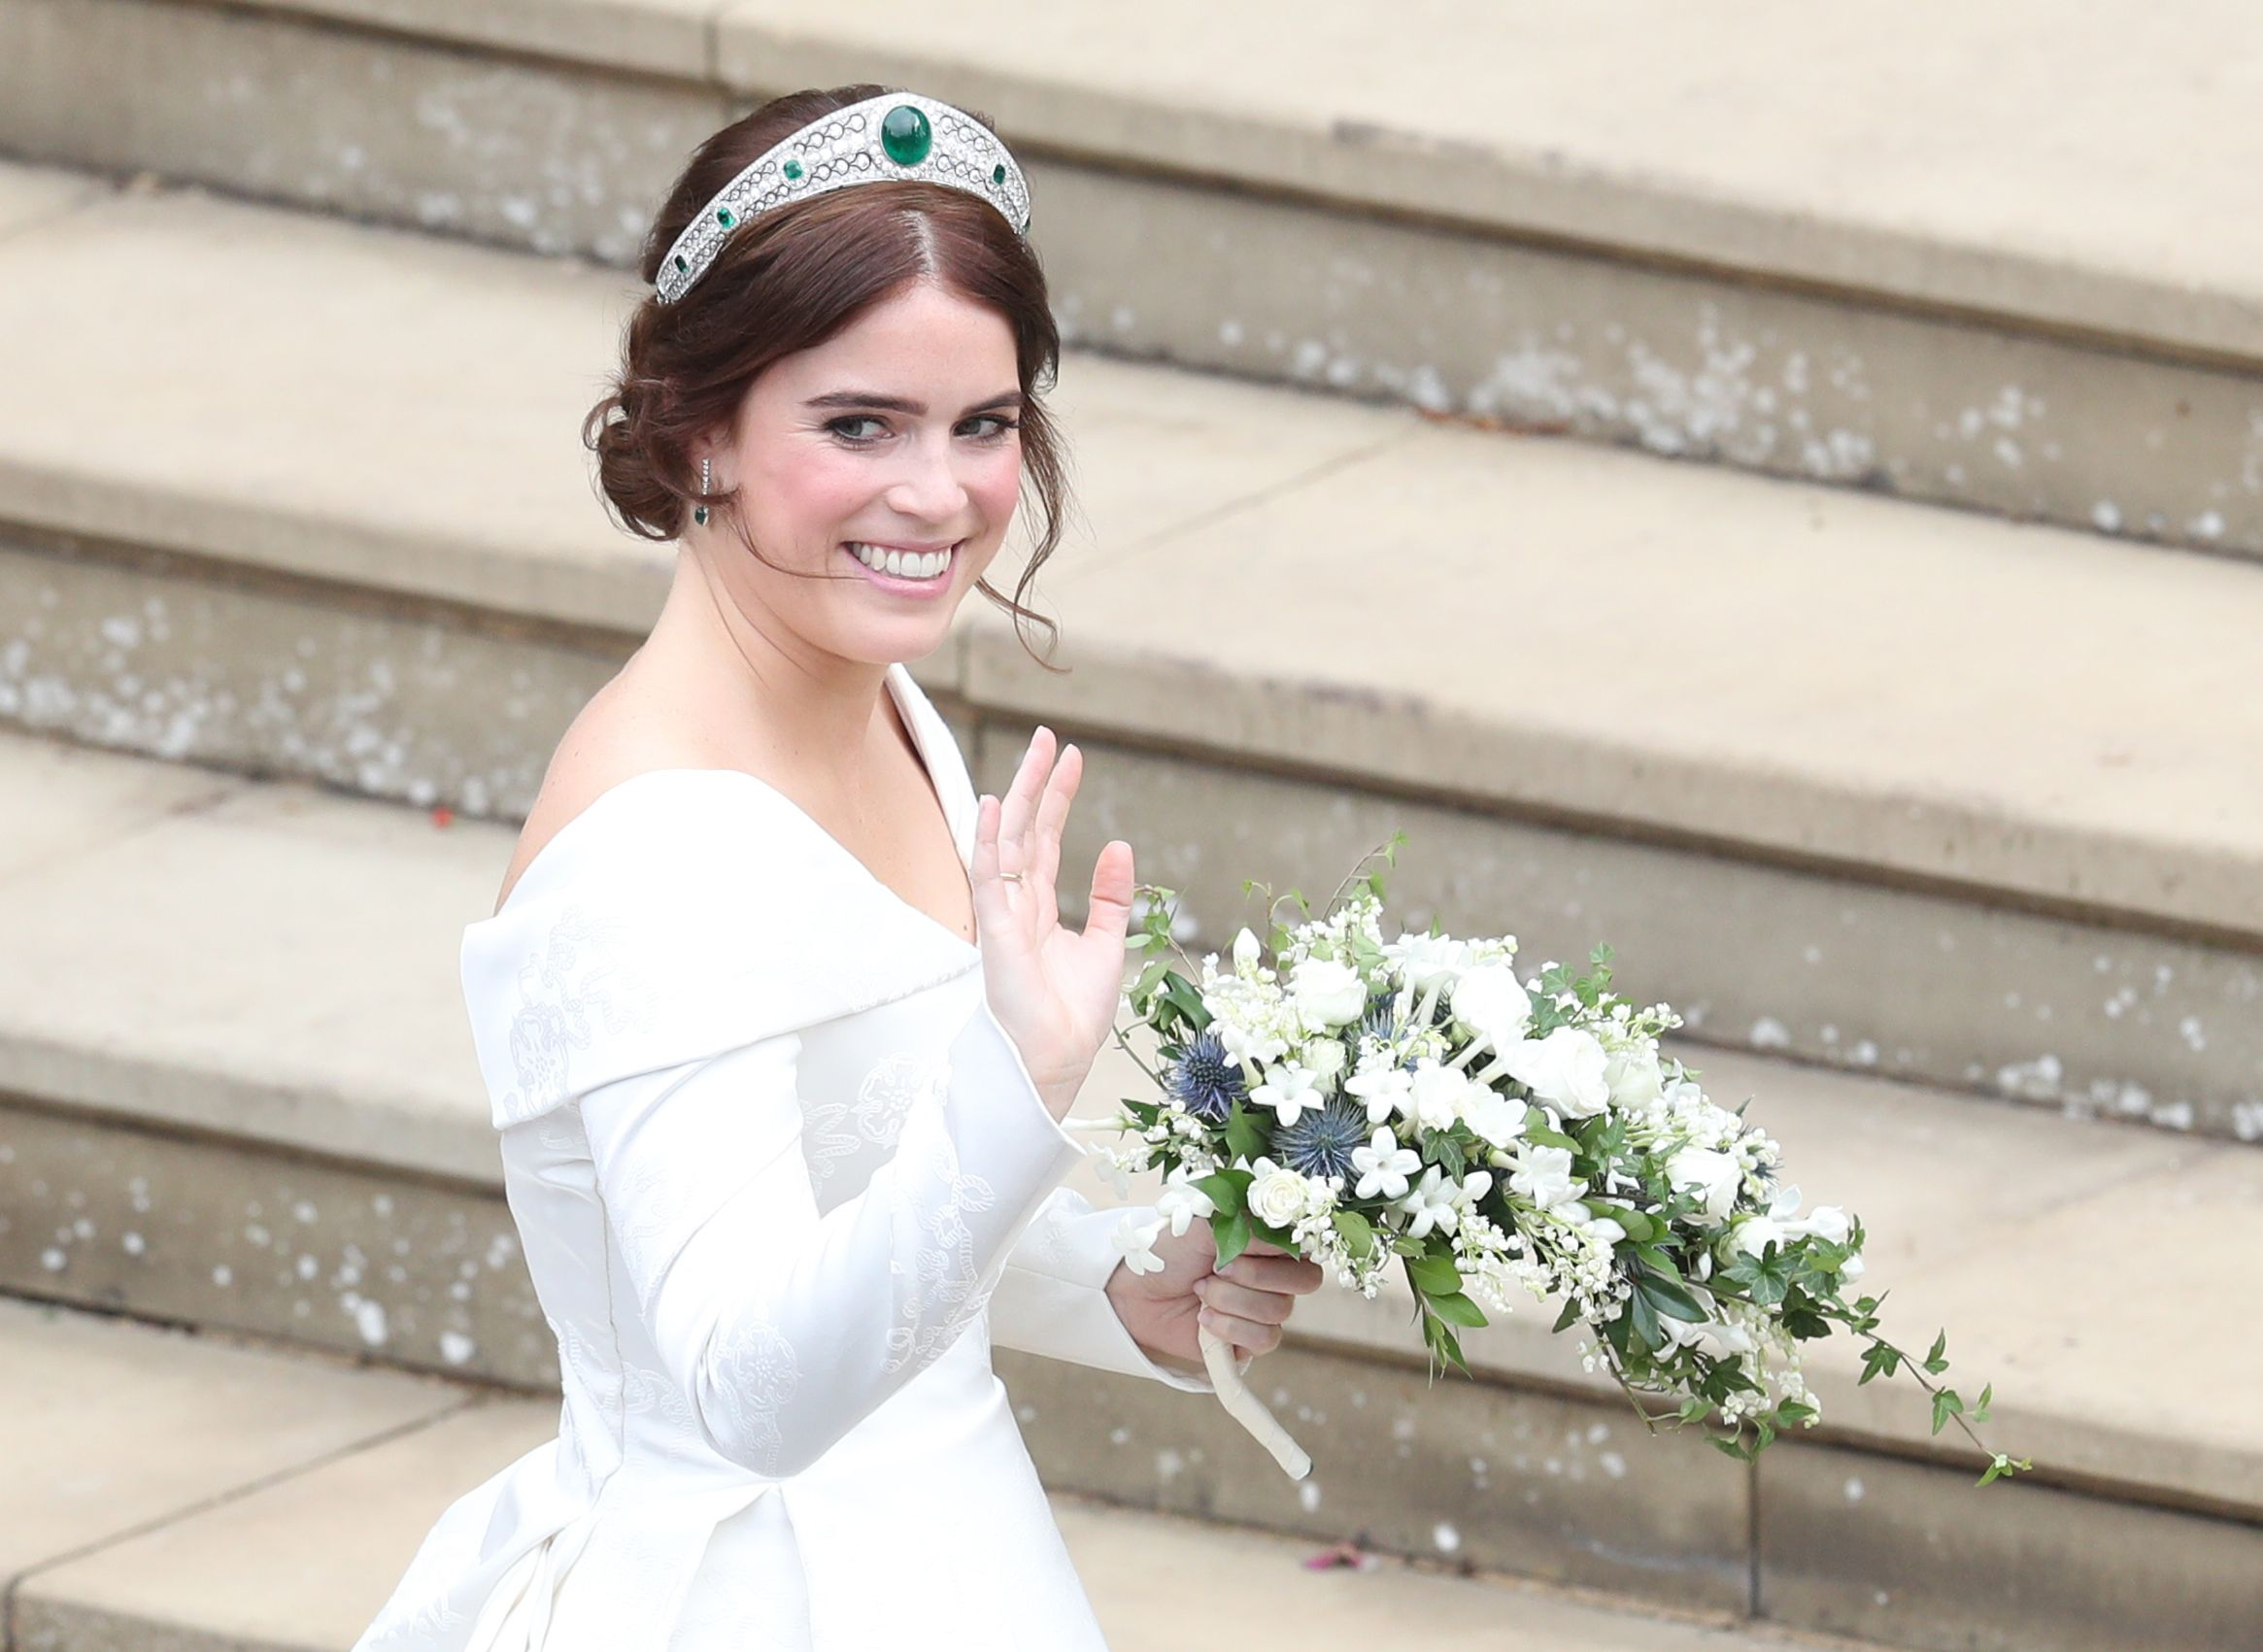 Royal Fans Love How Princess Eugenie S Low Back Wedding Dress Shows Off Her Scoliosis Scar